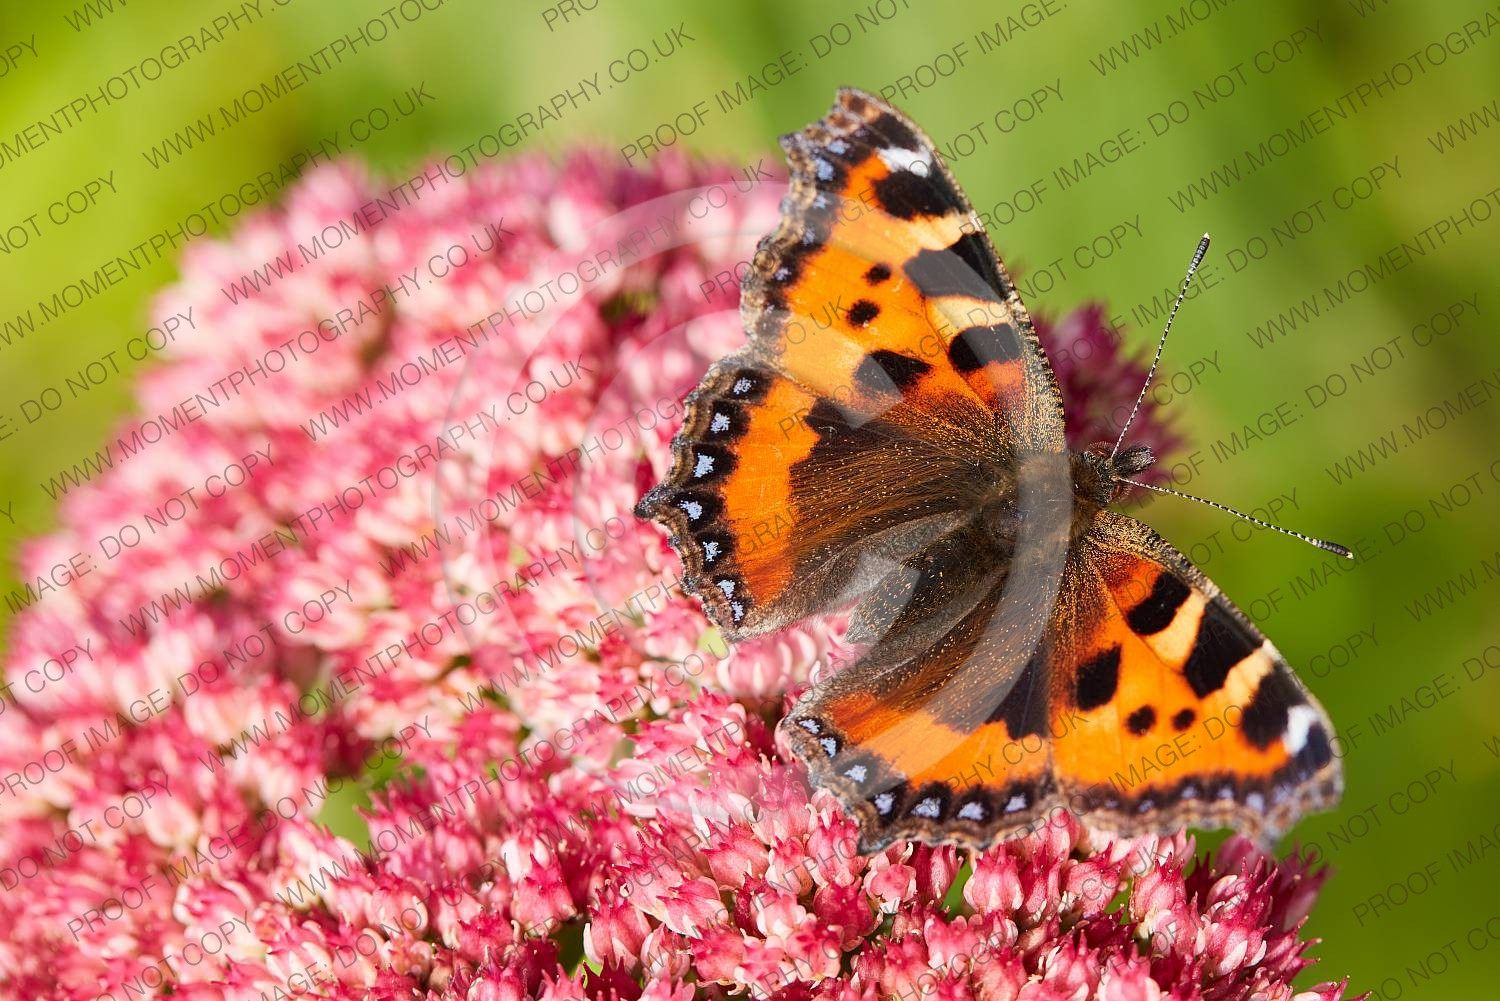 2020, autumn, bloom, blooming, bridgwater photographer, butterfly, chard, closeup, date, daytime, england, environment, fauna, feeding, flora, flower, fragility, garden, horticulture, insect, insects, invertebrate, moment photography, nature, ornamental, outdoor, outside, pink, places, plant, sedum, sedum herbstfreude, september, somerset, somerset photographer, somerset photography, south west, south west england, summer, sunday, sunny, tortoiseshell, united kingdom, wildlife, wildlife conservation, wing